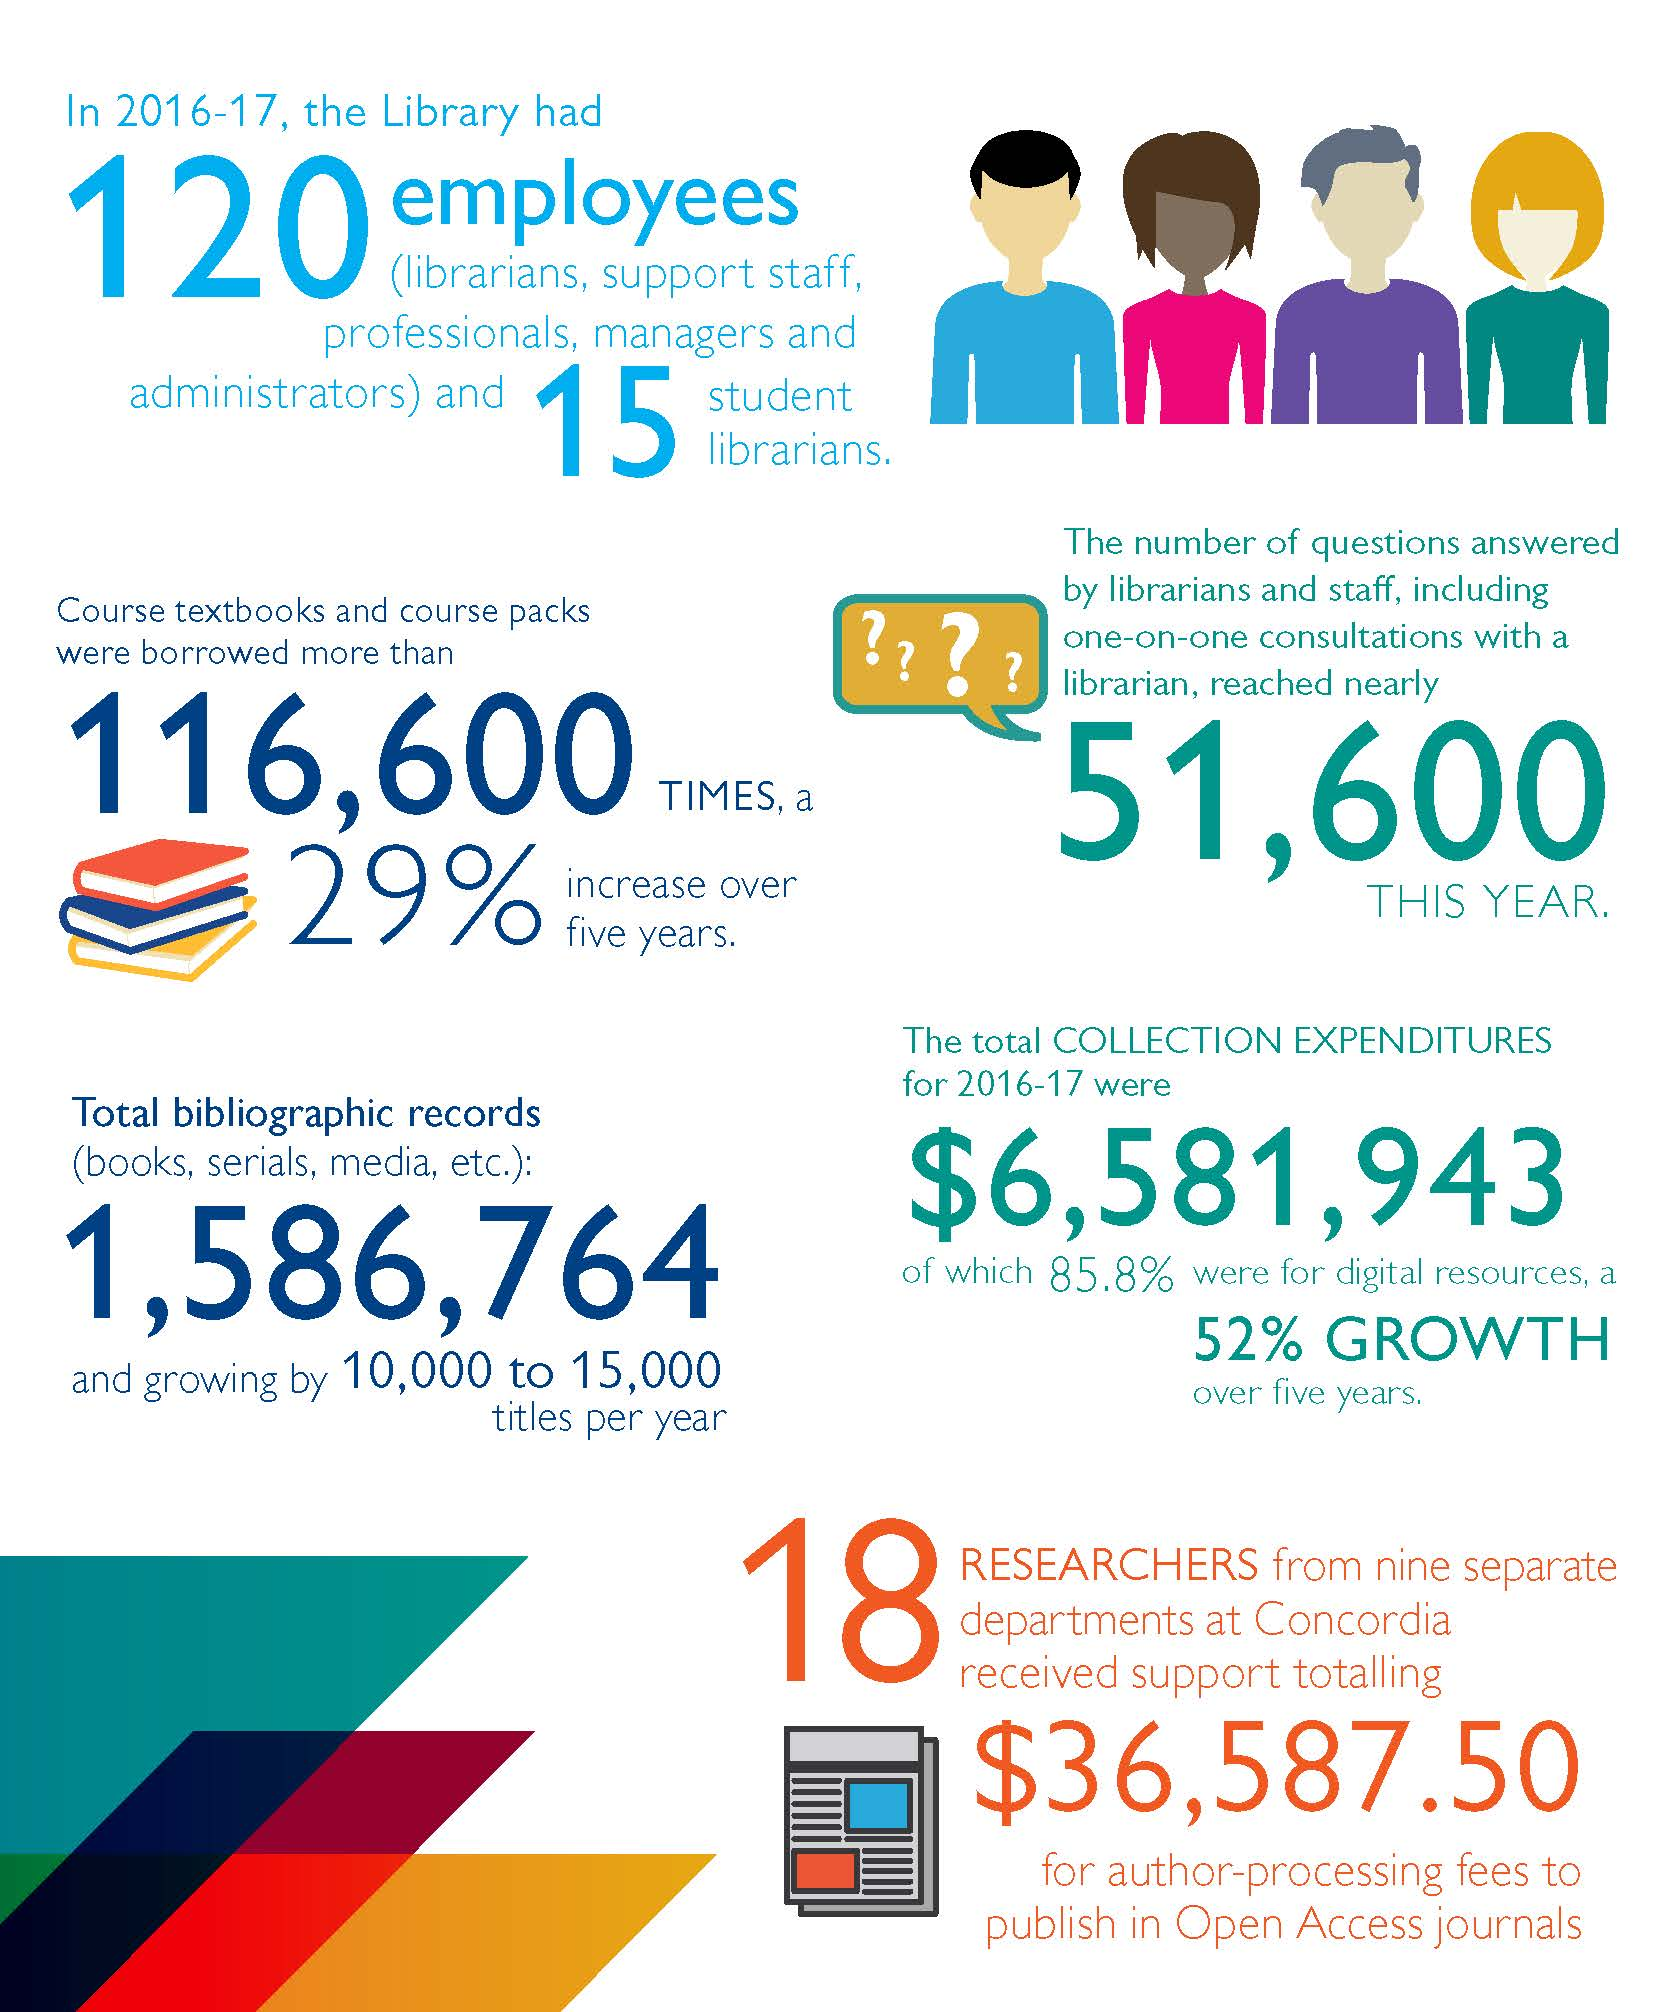 2016-2017 Infographic illustrating library facts